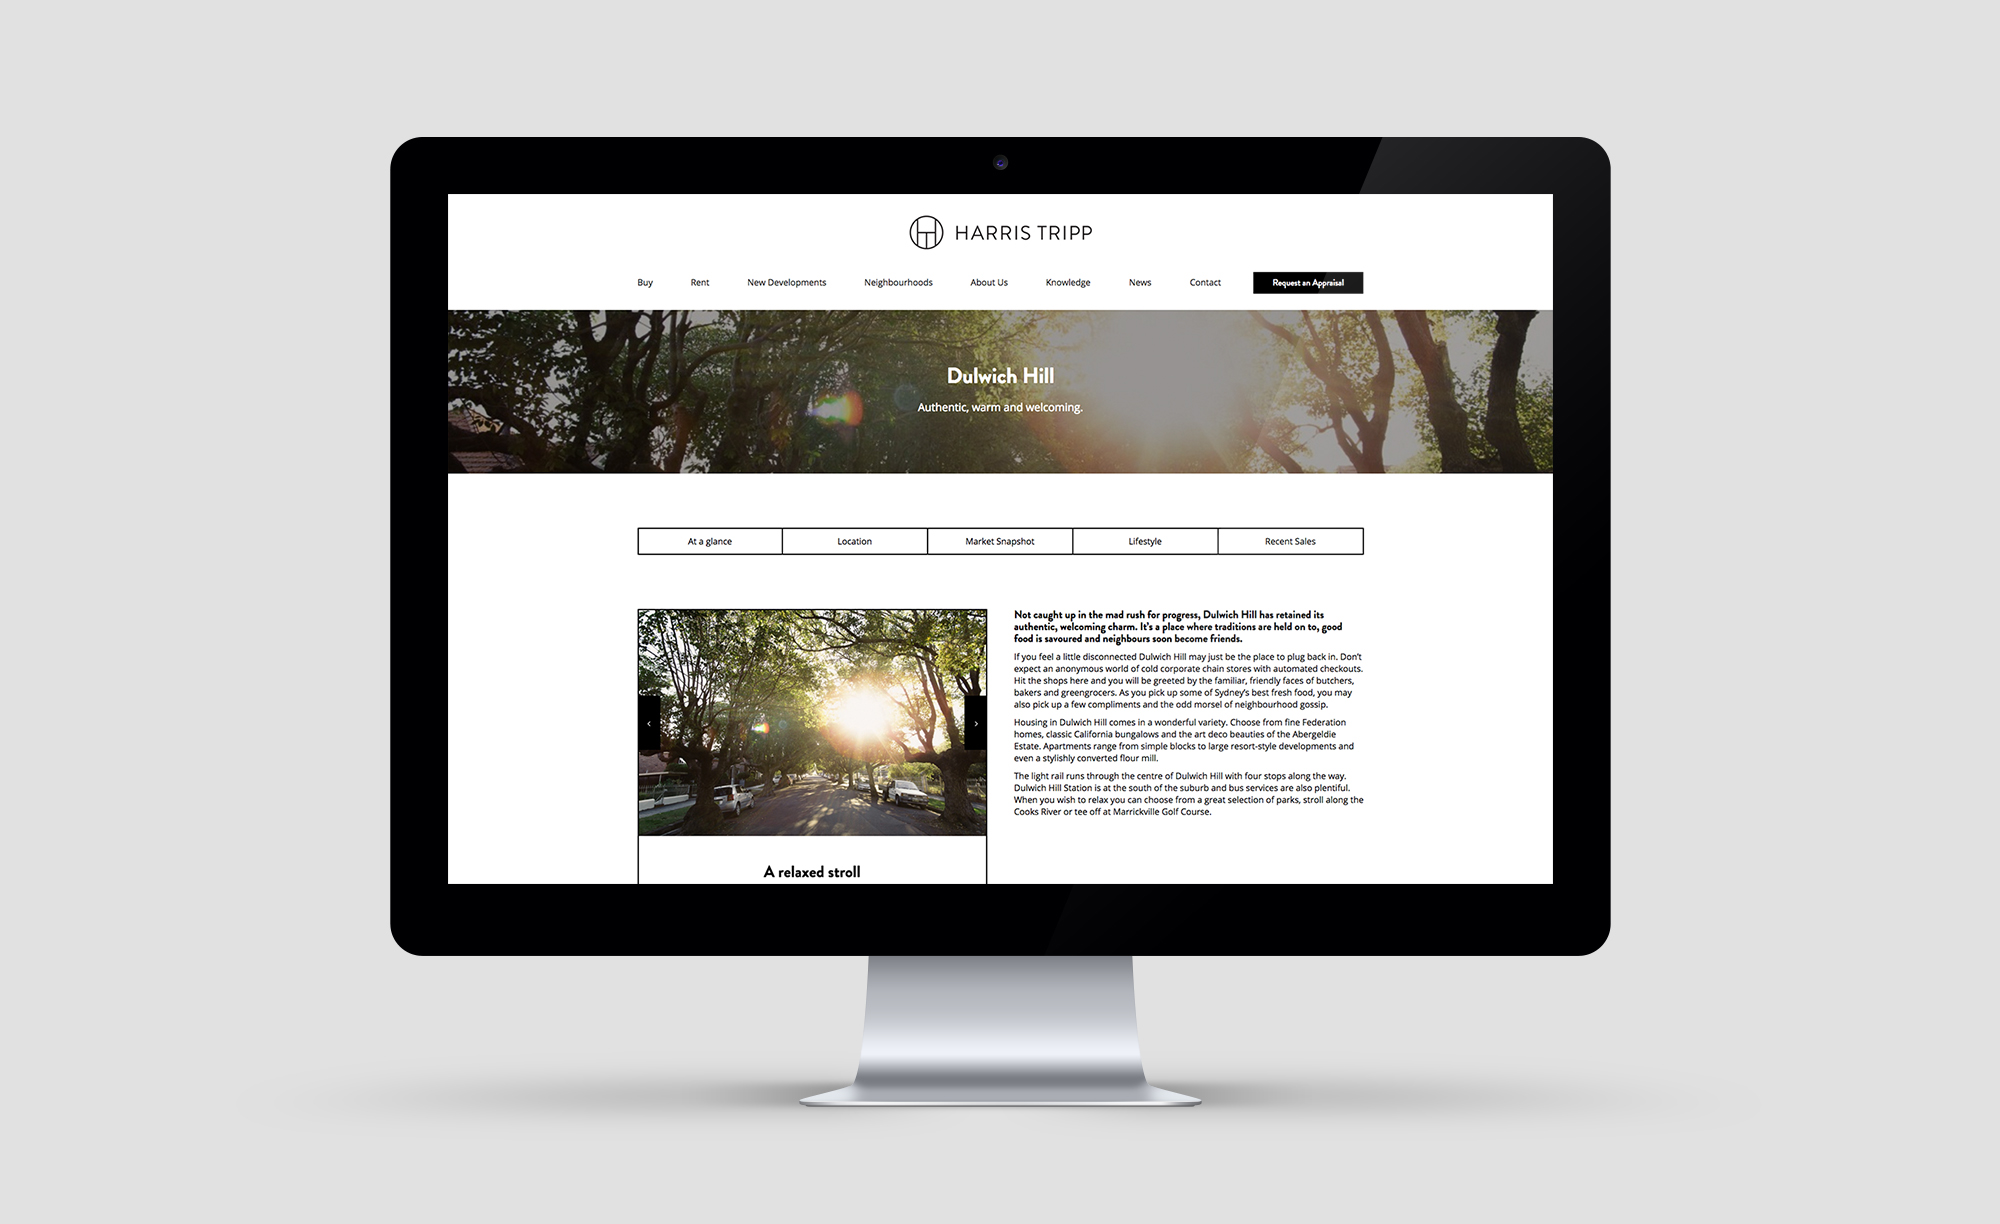 Commercial real estate website design for Harris Tripp by Yoke